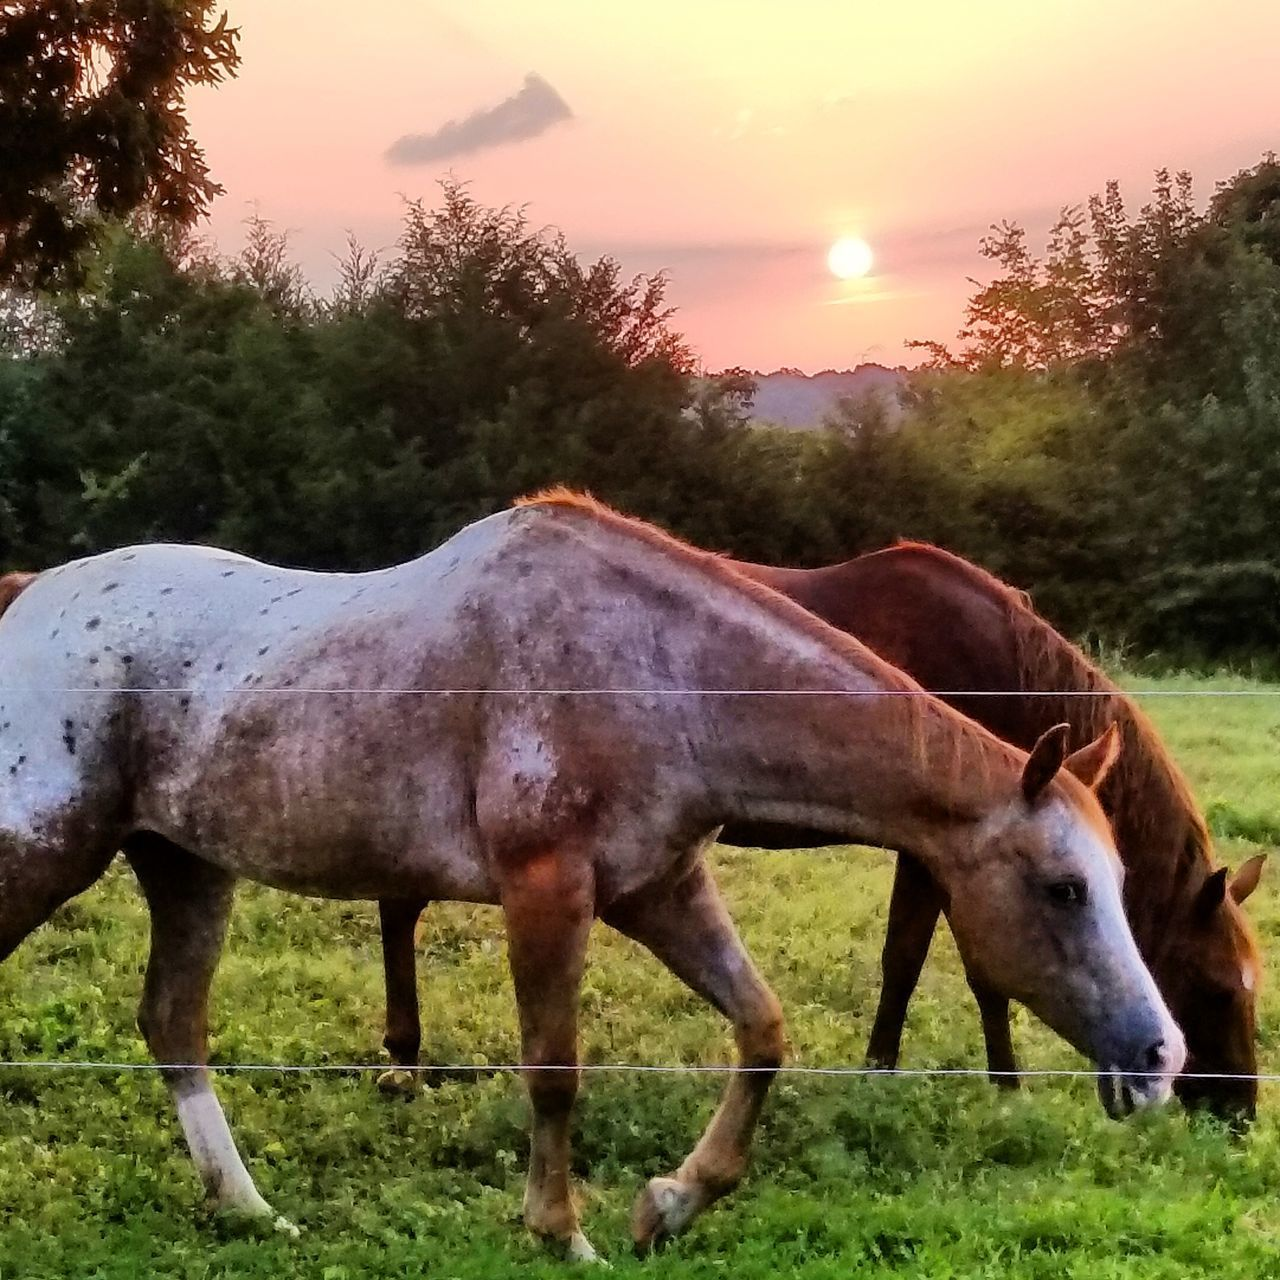 horse, domestic animals, animal themes, grass, tree, field, herbivorous, mammal, livestock, no people, standing, outdoors, one animal, landscape, sky, nature, sunset, day, beauty in nature